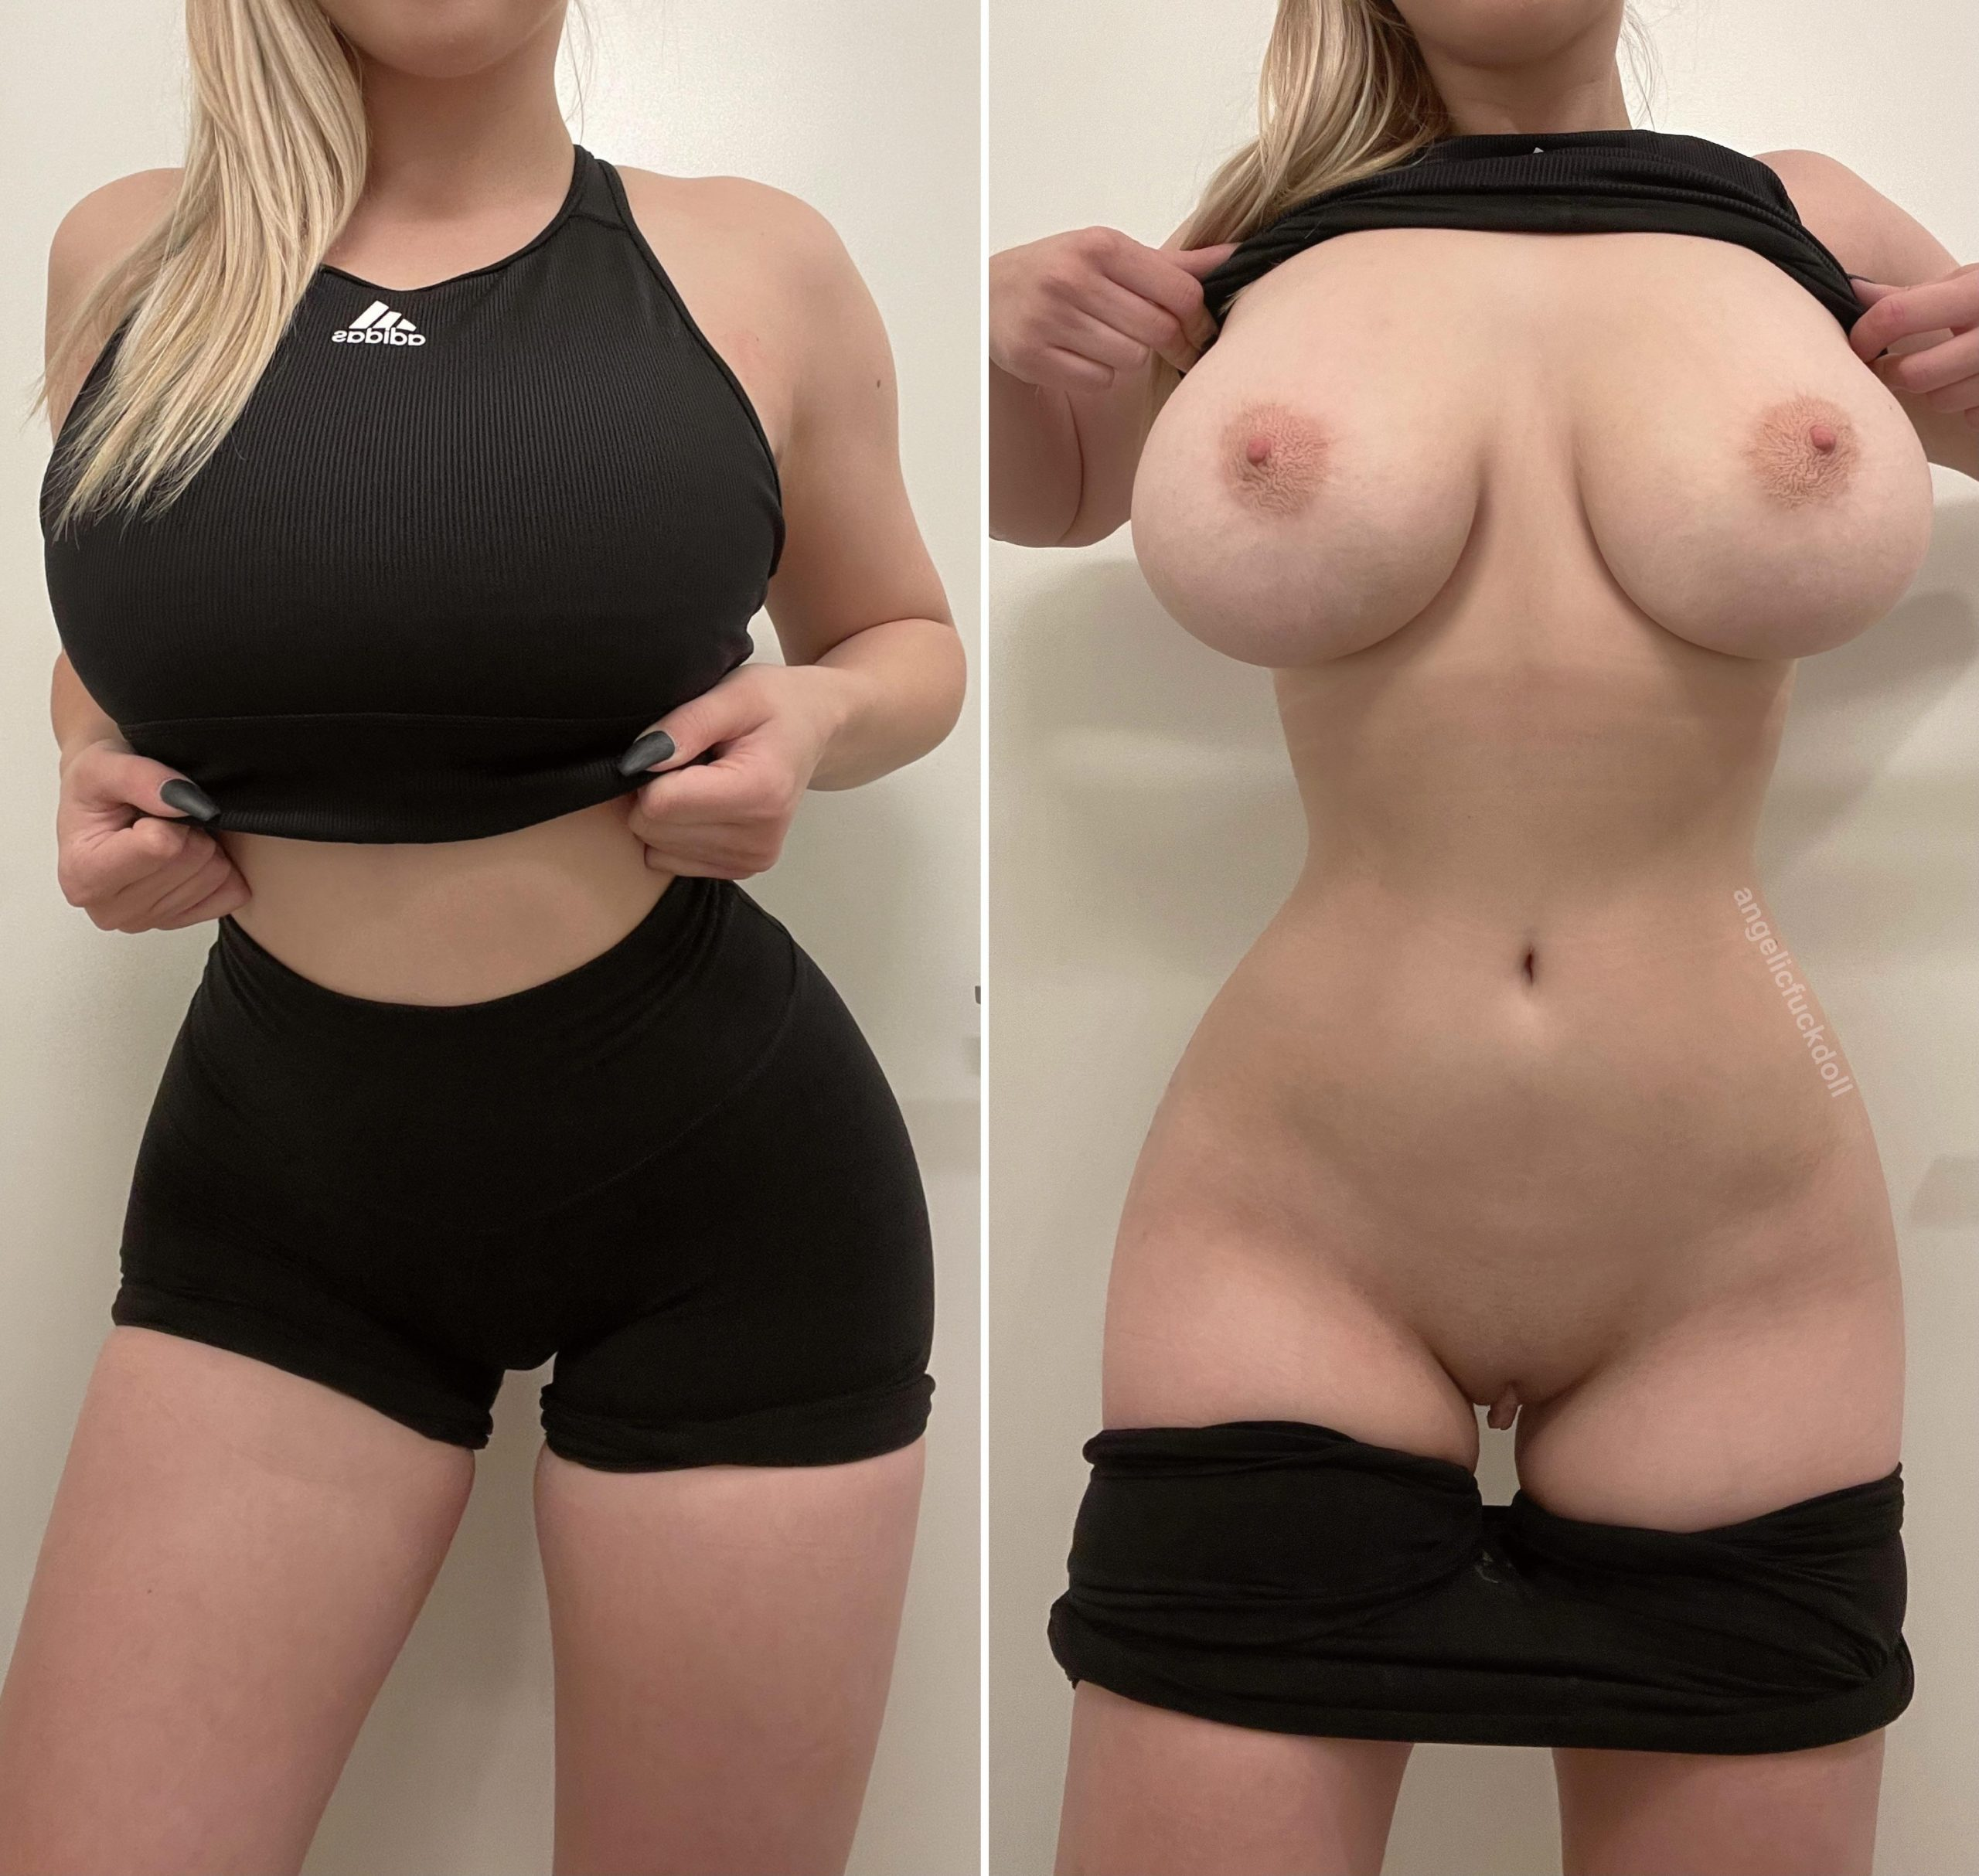 Even a sports bra can't hide these